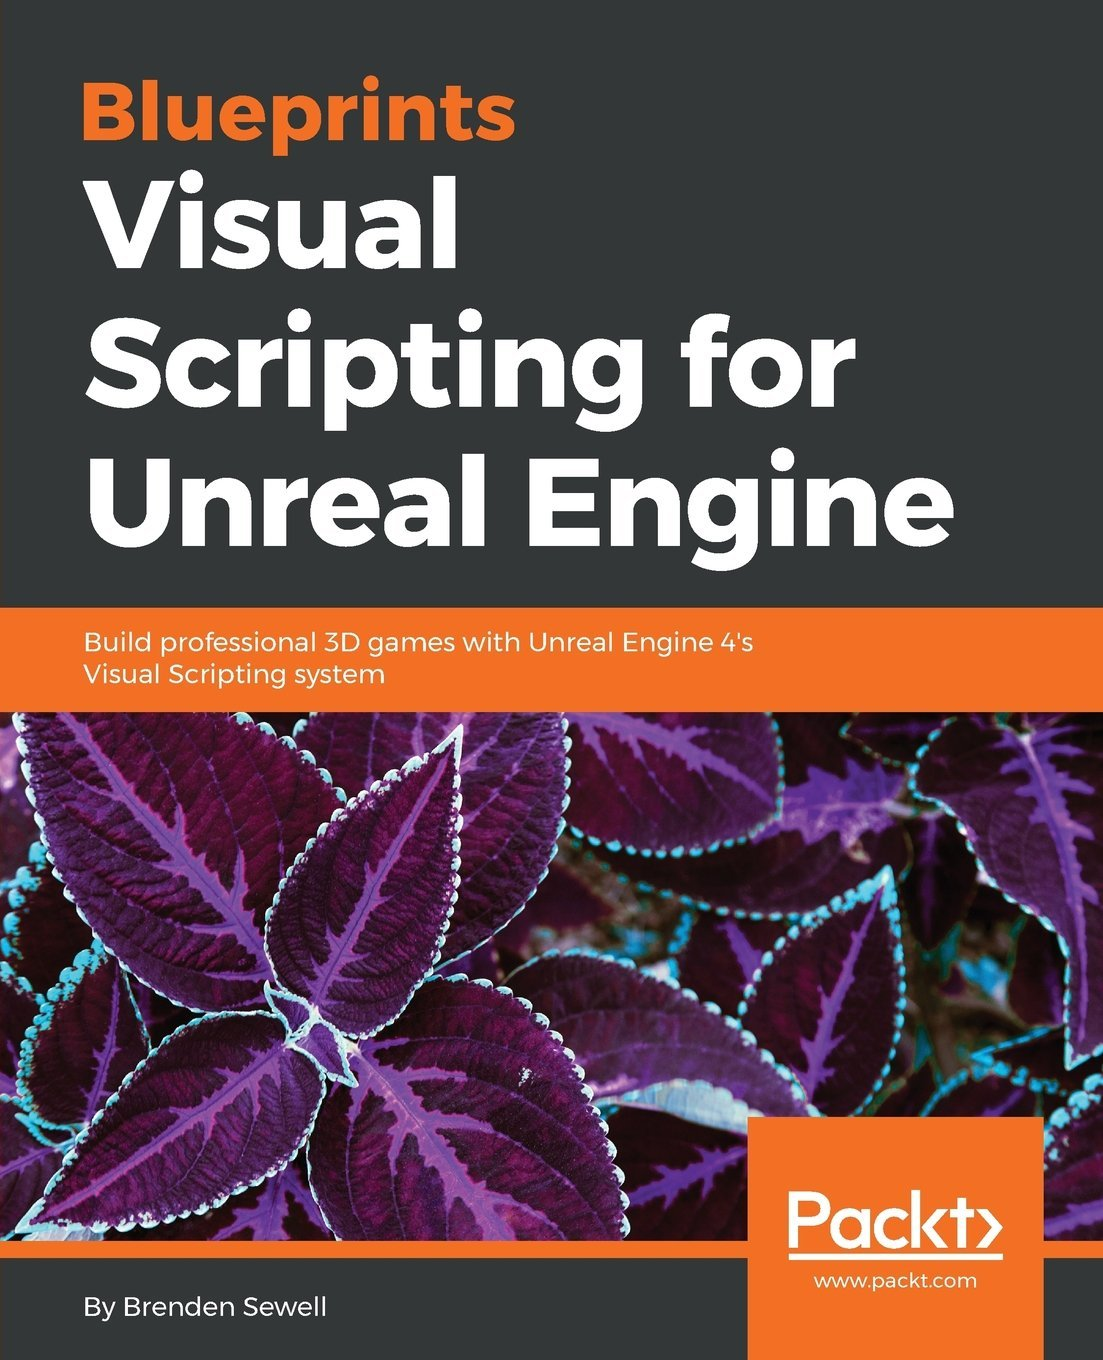 Blueprints visual scripting for unreal engine english edition blueprints visual scripting for unreal engine english edition amazon brenden sewell fremdsprachige bcher malvernweather Image collections